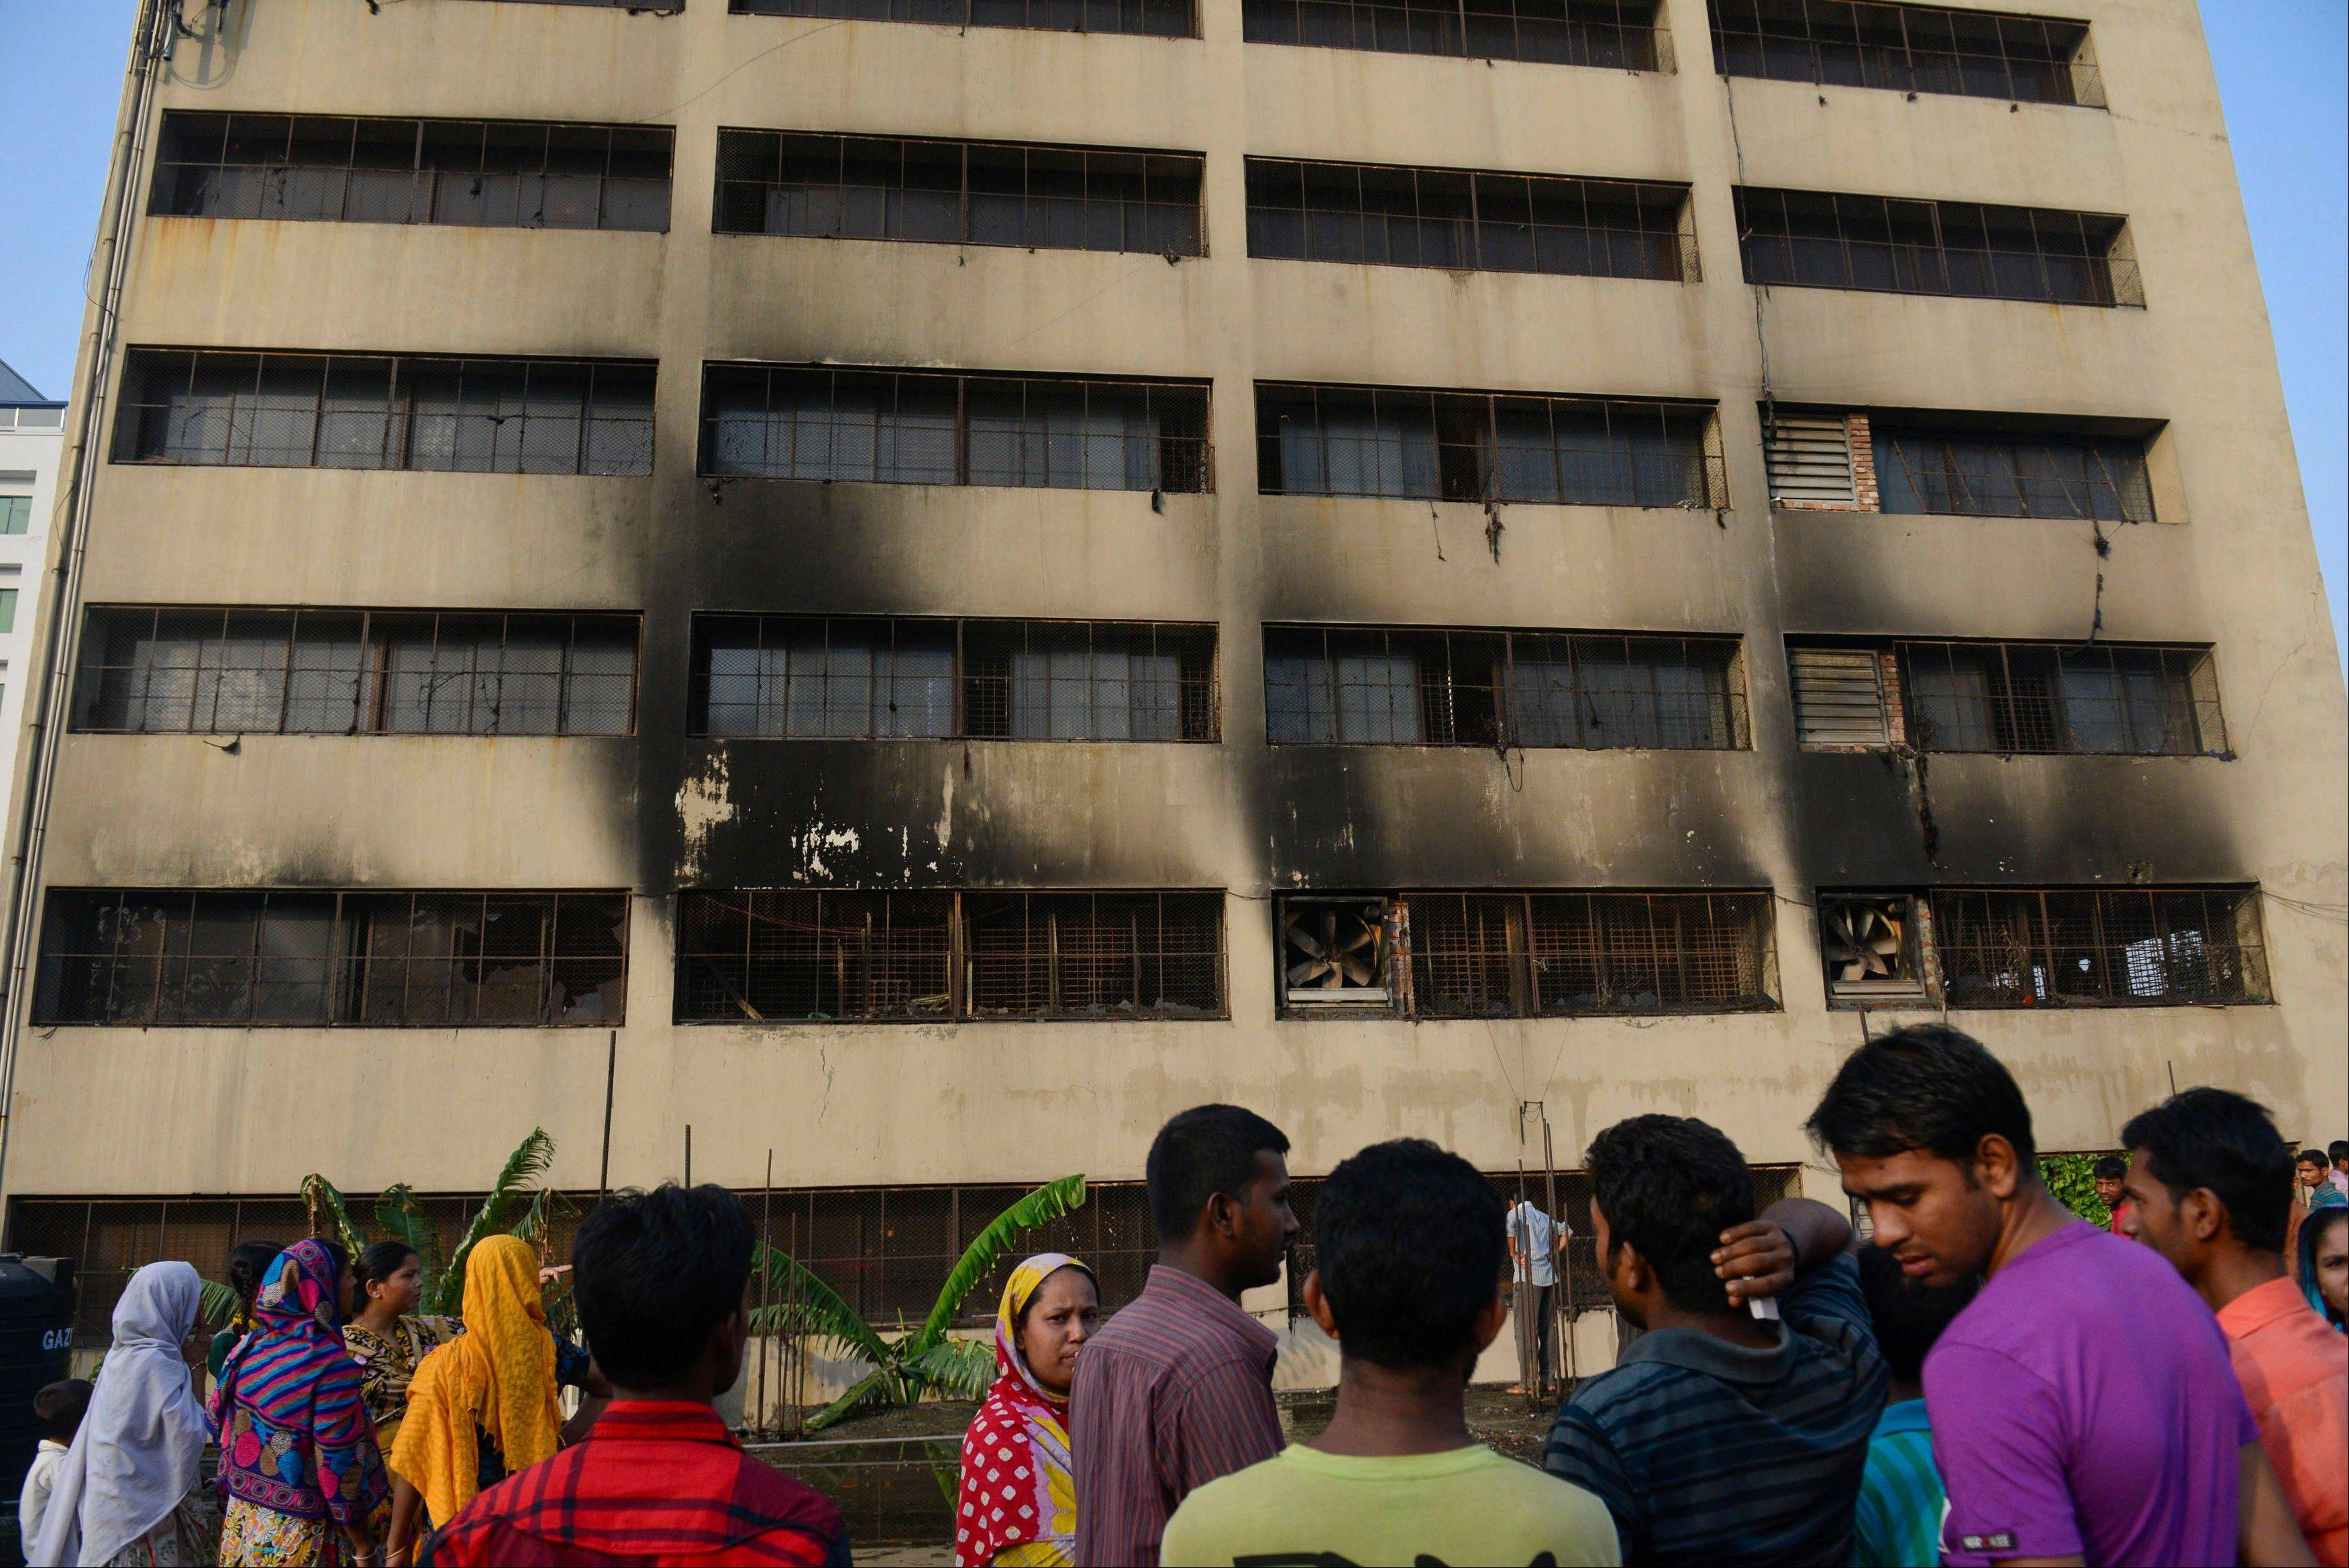 Workers stand outside an 11-story building that houses the Tung Hai Sweater Ltd. factory and apartments after a fire in Dhaka, Bangladesh, Thursday, May 9, 2013. The fire broke out in the building Wednesday night, not long after the up to 300 workers of the factory went home for the day, killing at least eight people officials said Thursday.